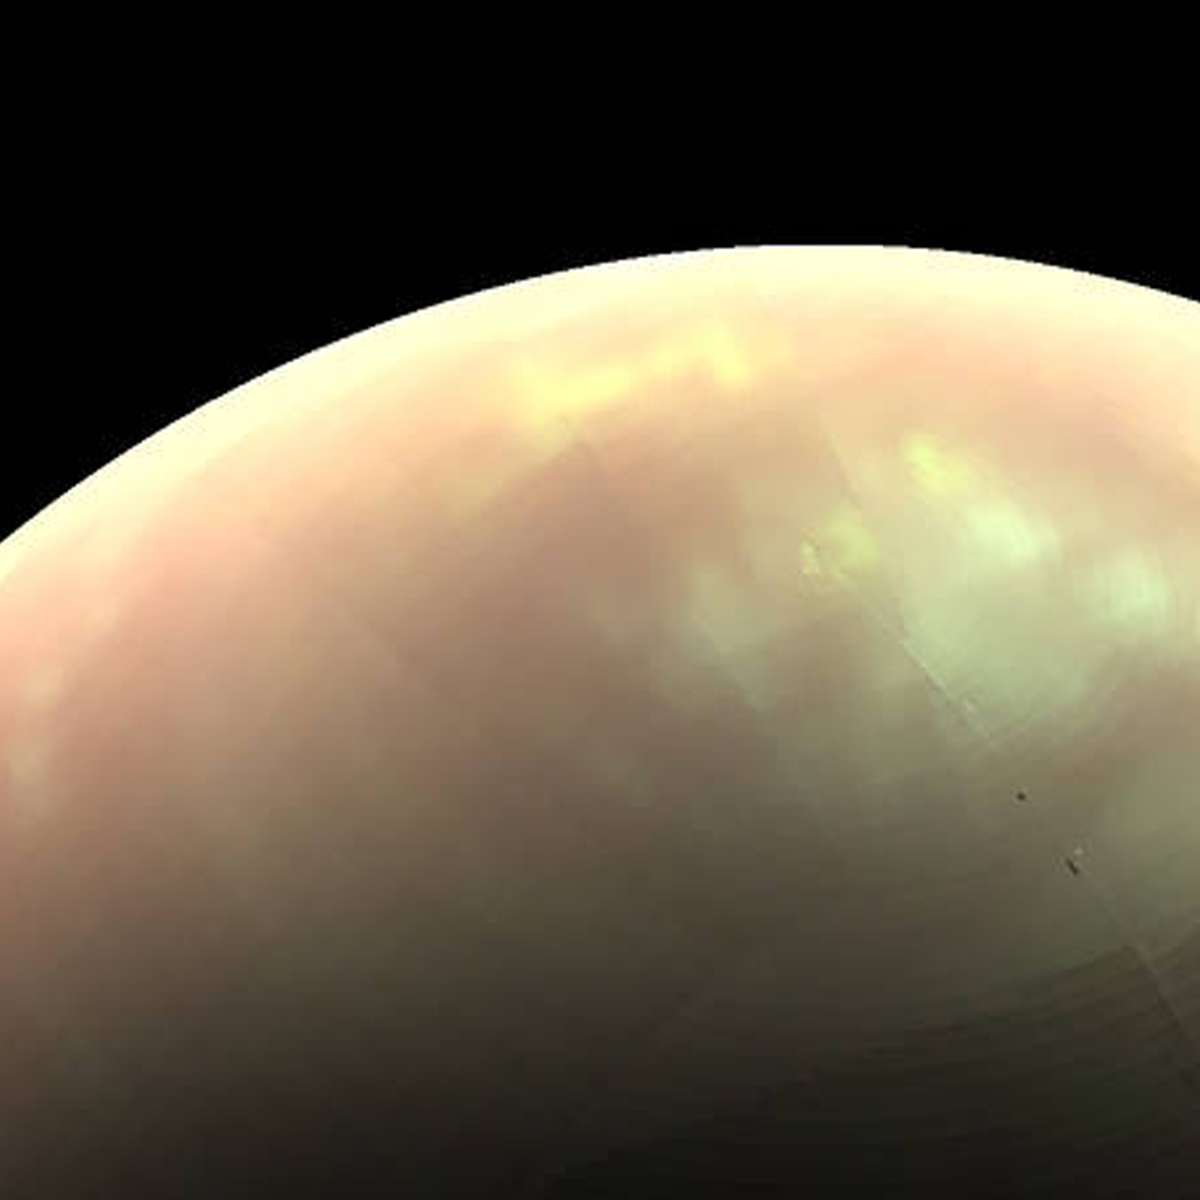 NASA image of Saturn's moon Titan